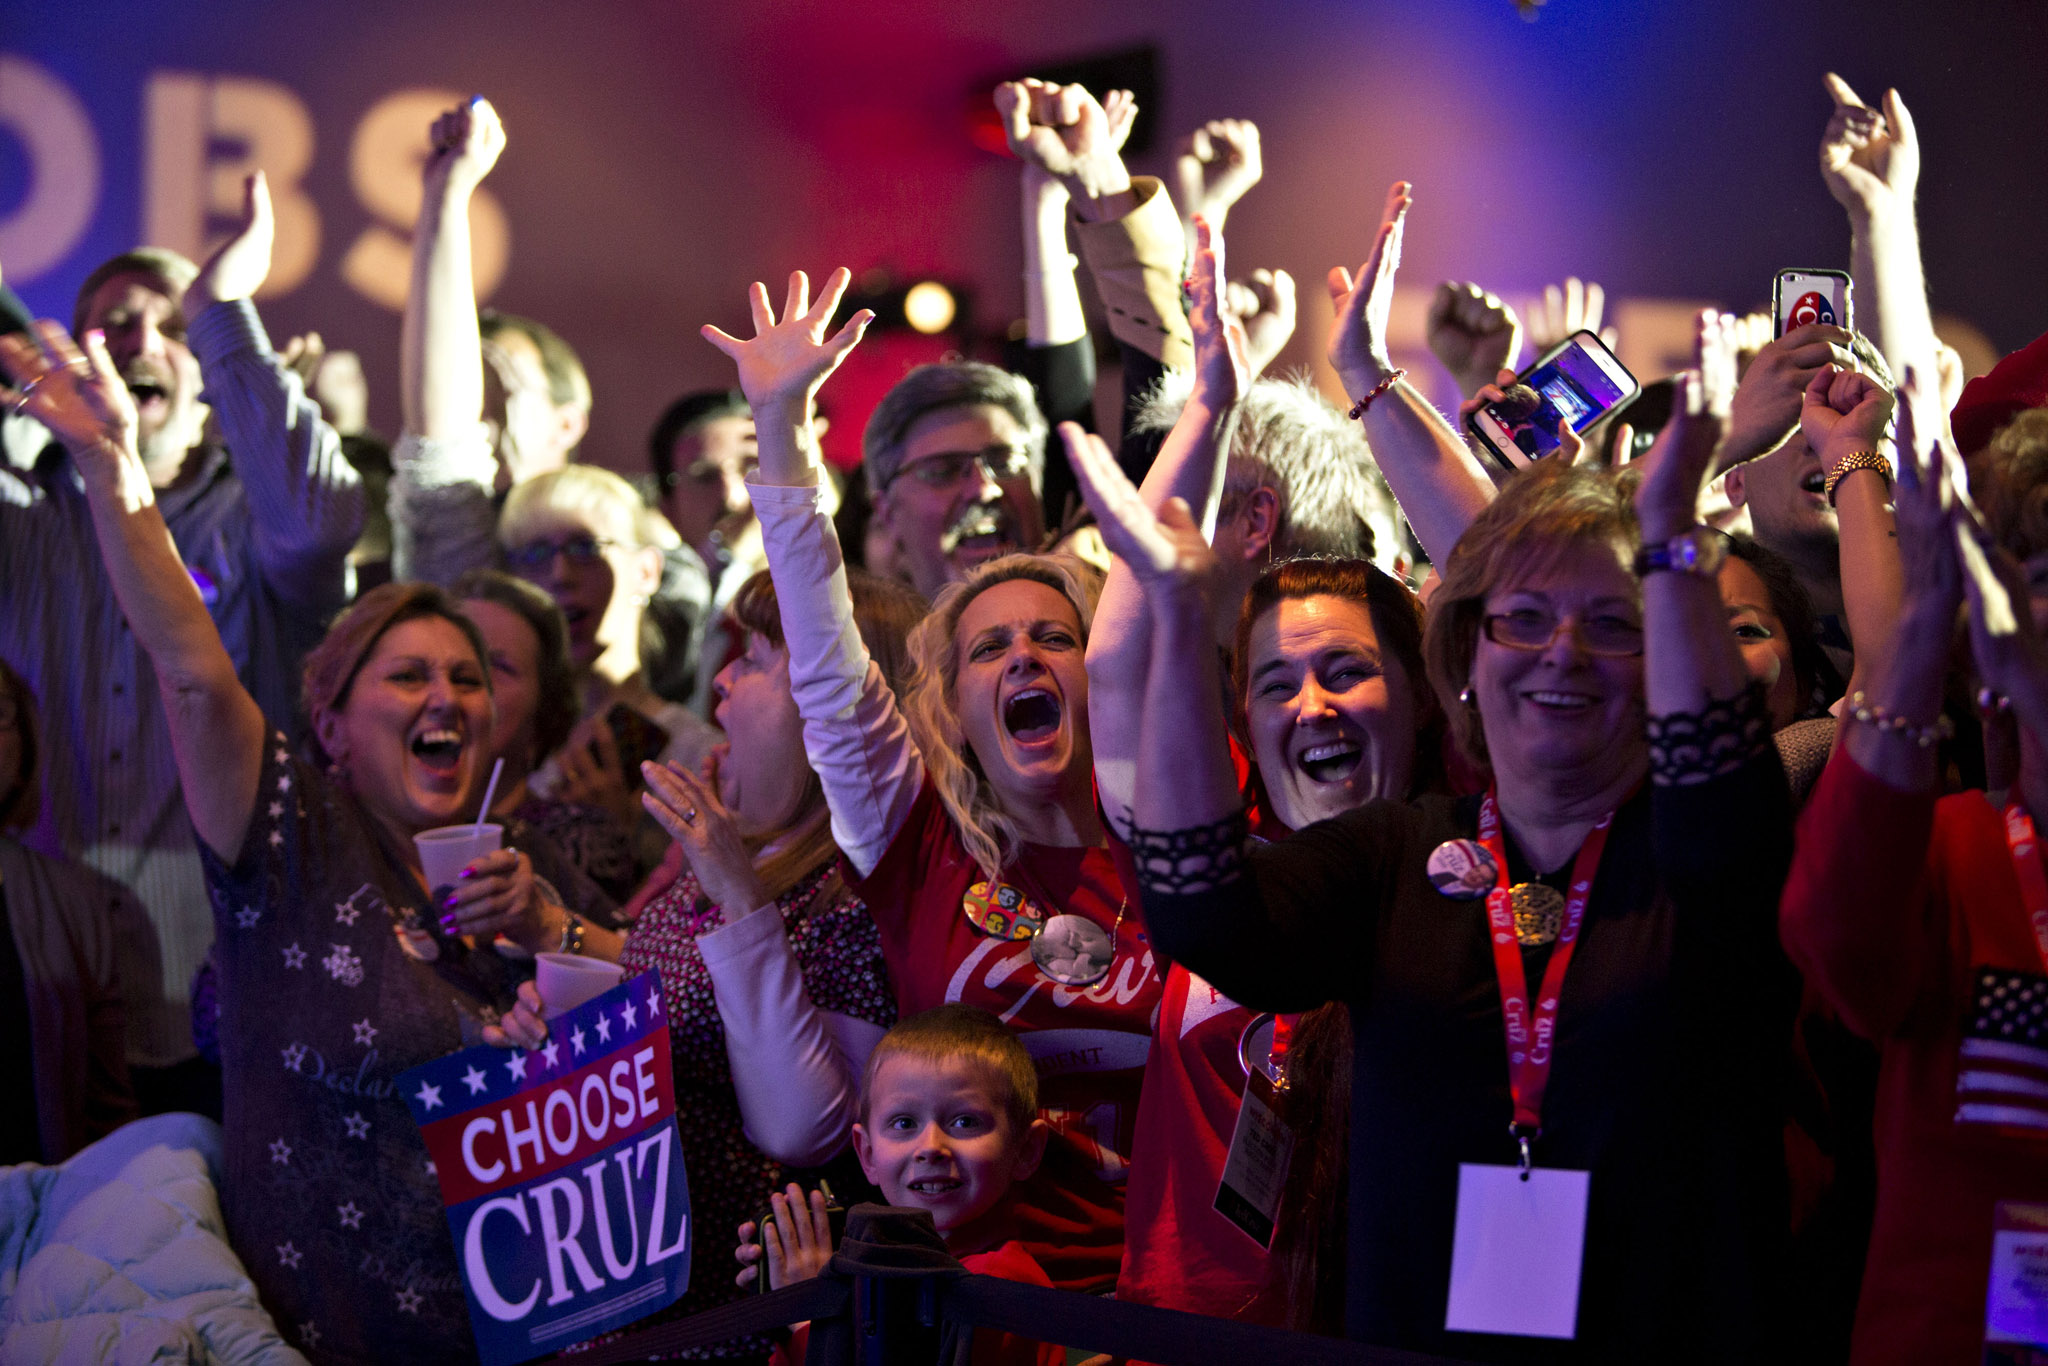 Attendees cheer for Senator Ted Cruz, a Republican from Texas and 2016 presidential candidate, not pictured, during a campaign event in Milwaukee